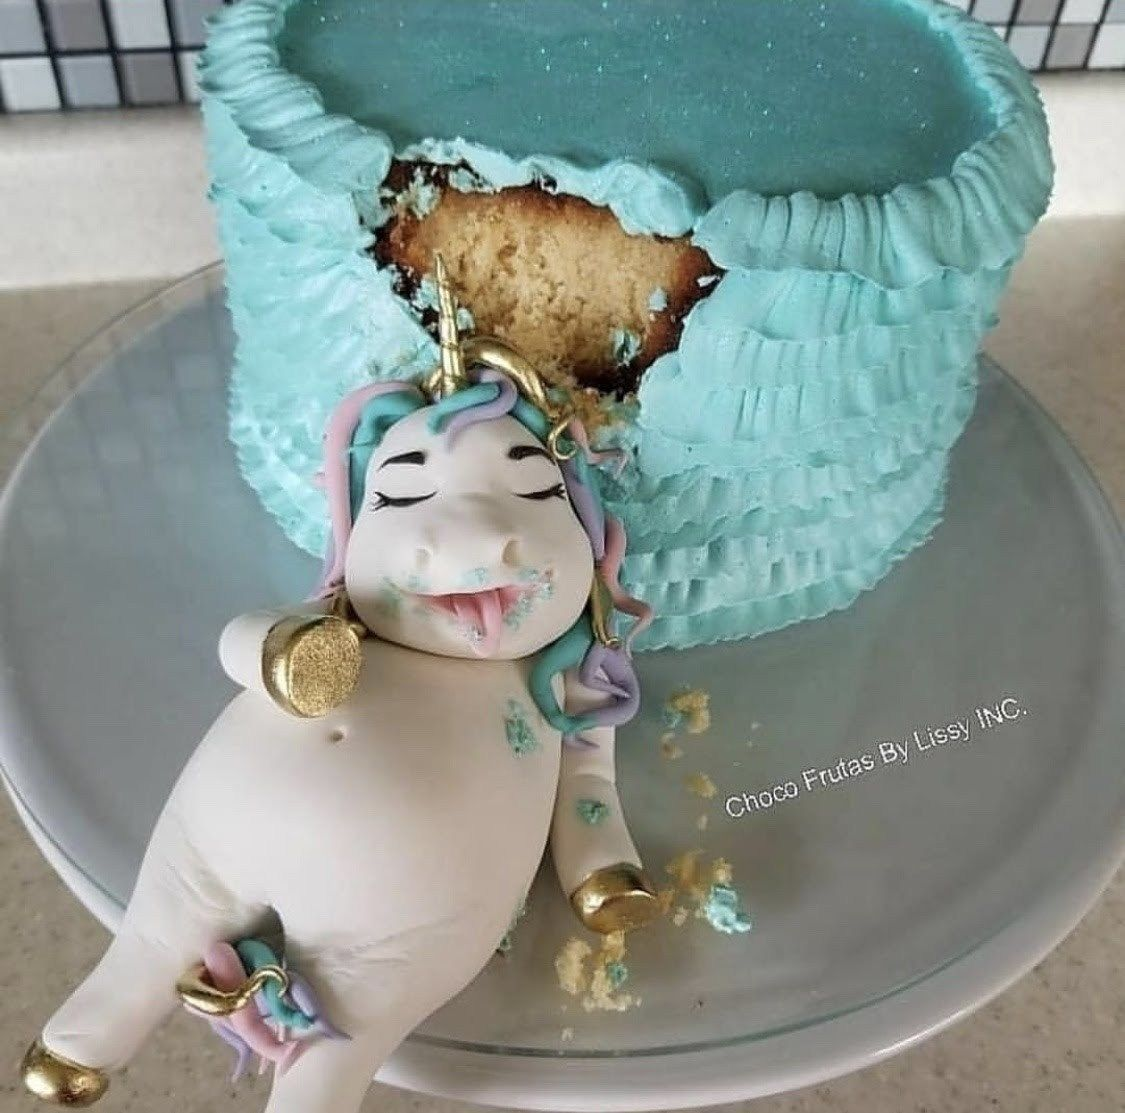 How to Make A Cute Fat Unicorn Cake - Unicorn birthday cake, Unicorn cake, Cake, Fat unicorn, Cute cakes, Cupcake cakes - Learn how to make this unicorn cake easily at home  Use these cake decorating tips and tricks to create your own cute fat unicorn cake!